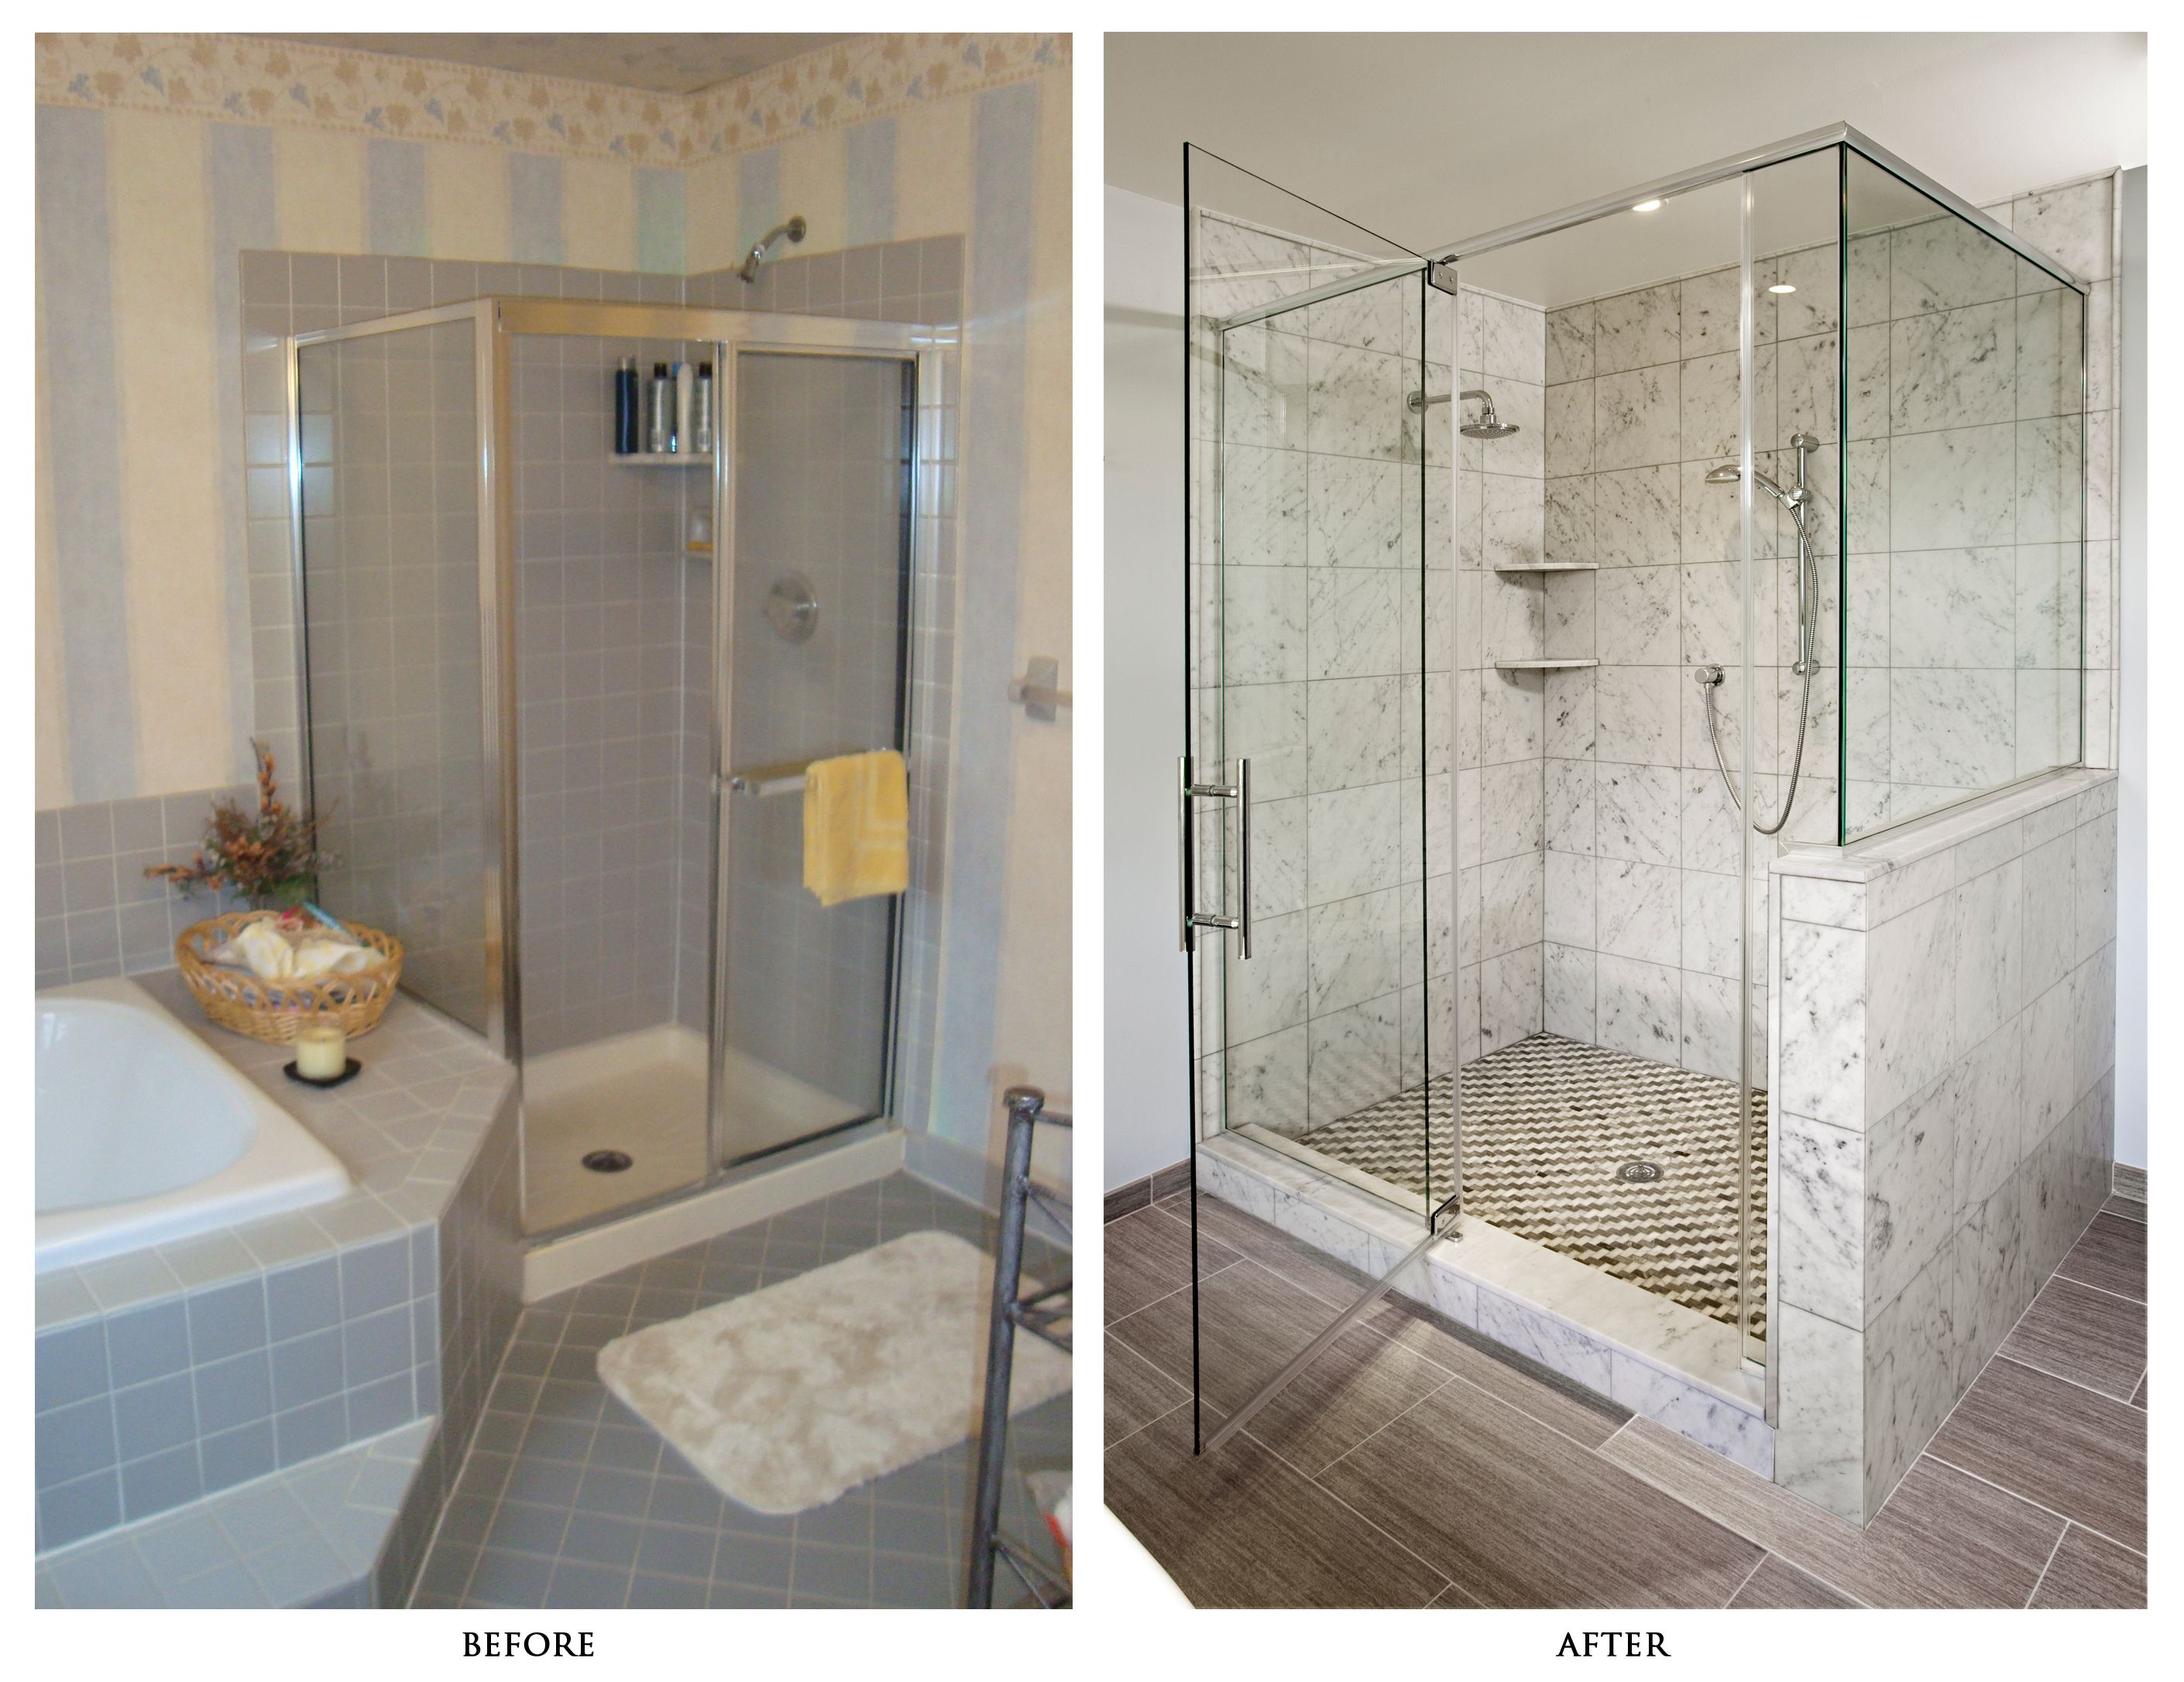 Bathroom Renovation Ideas Before And After fancy small bathroom remodel with larger glass shower enclosure